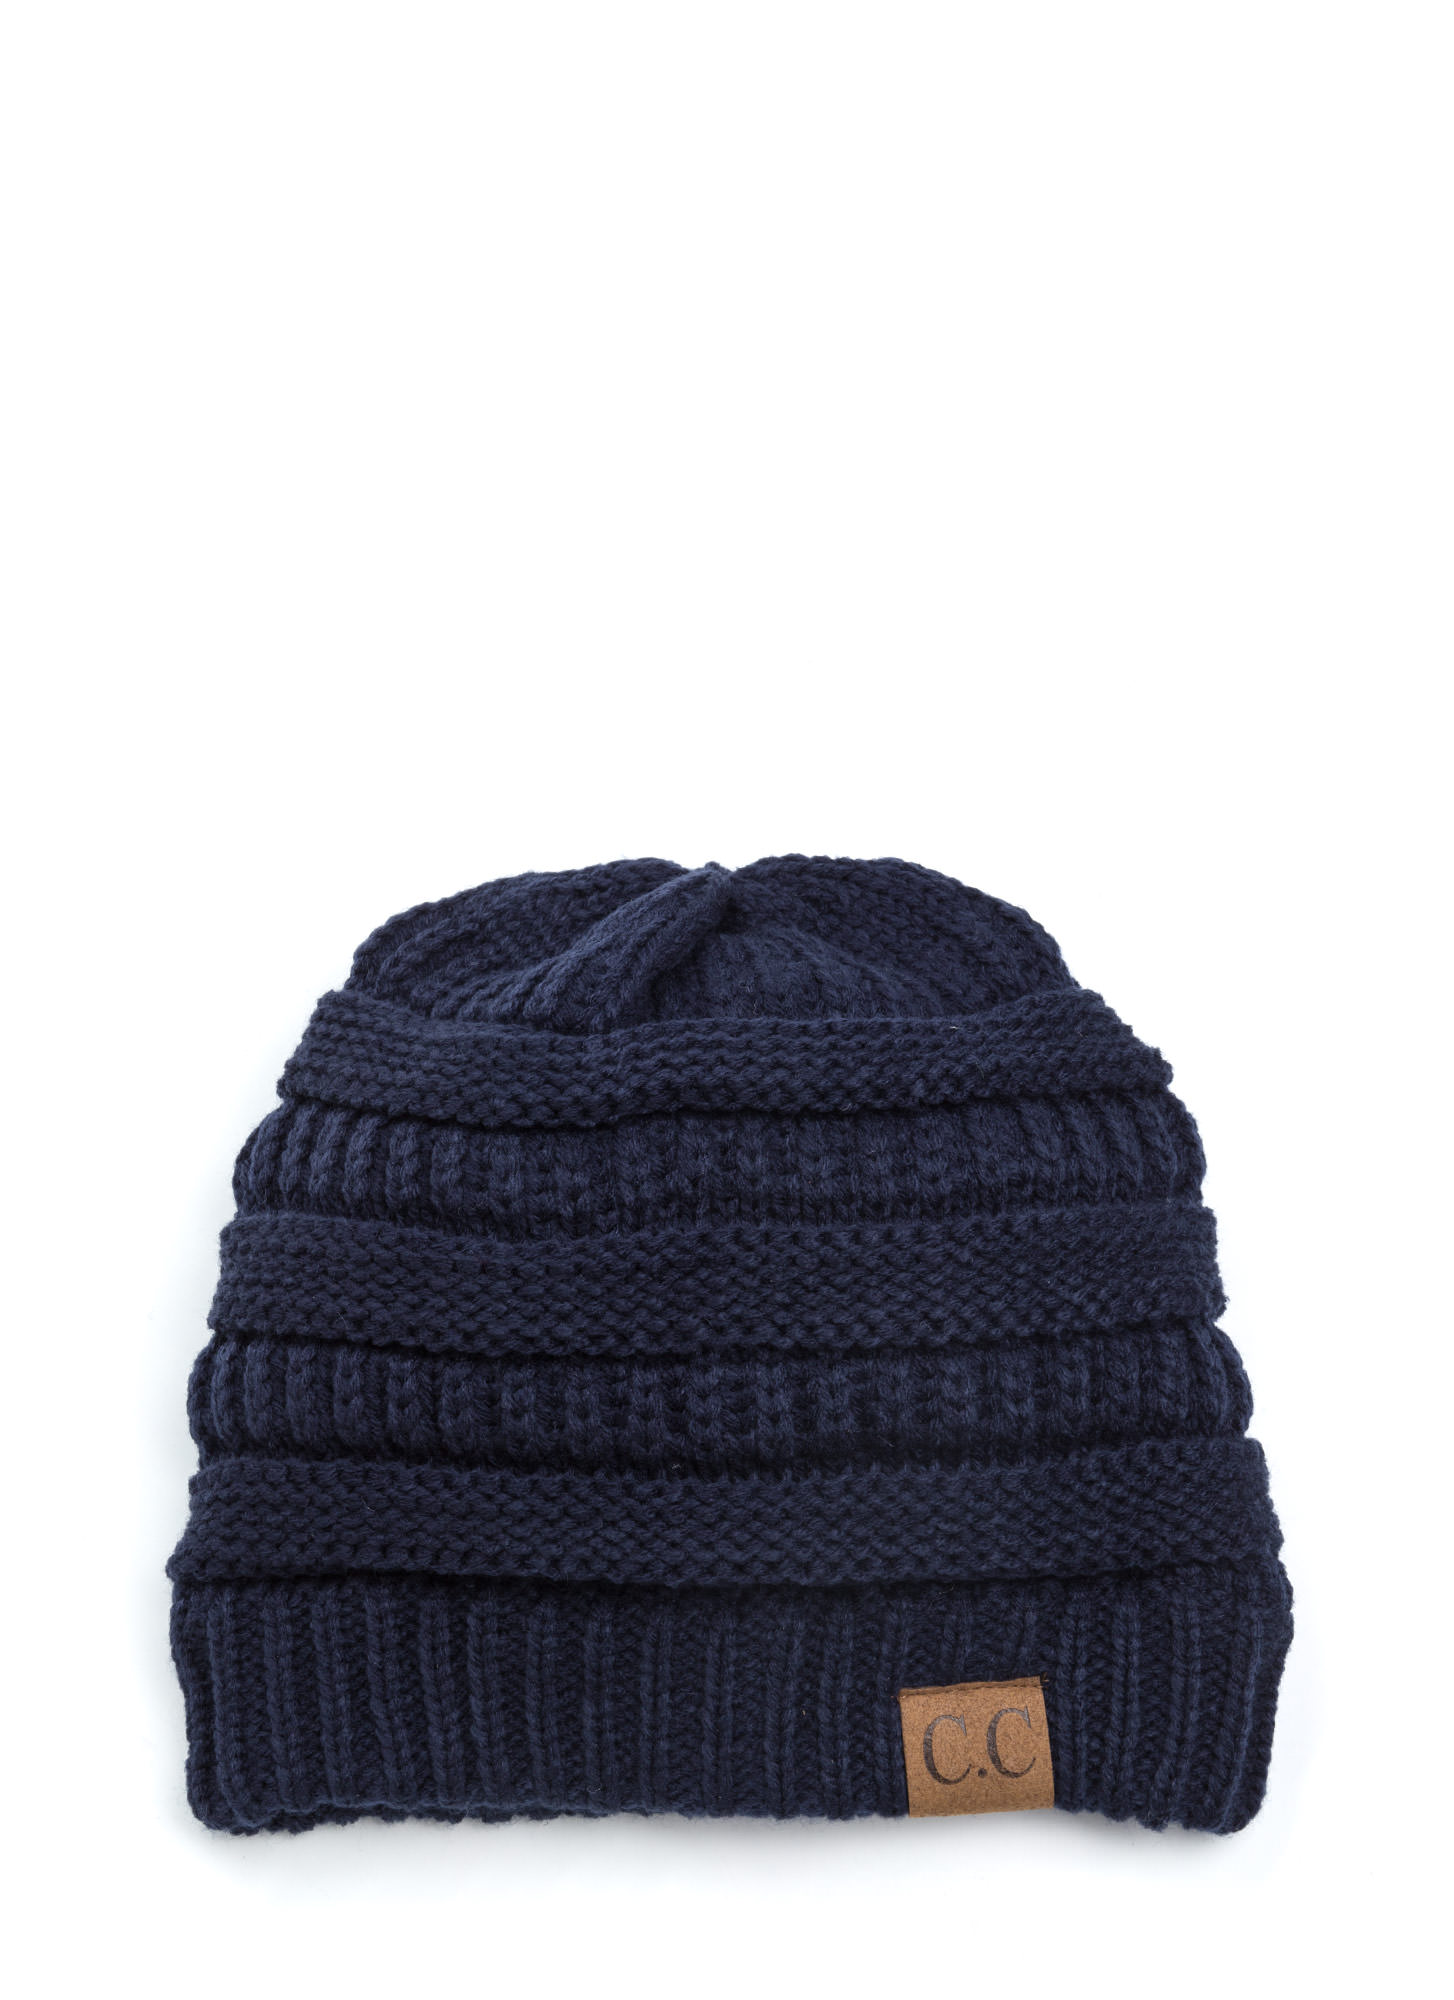 CC Cable Kit Beanie NAVY